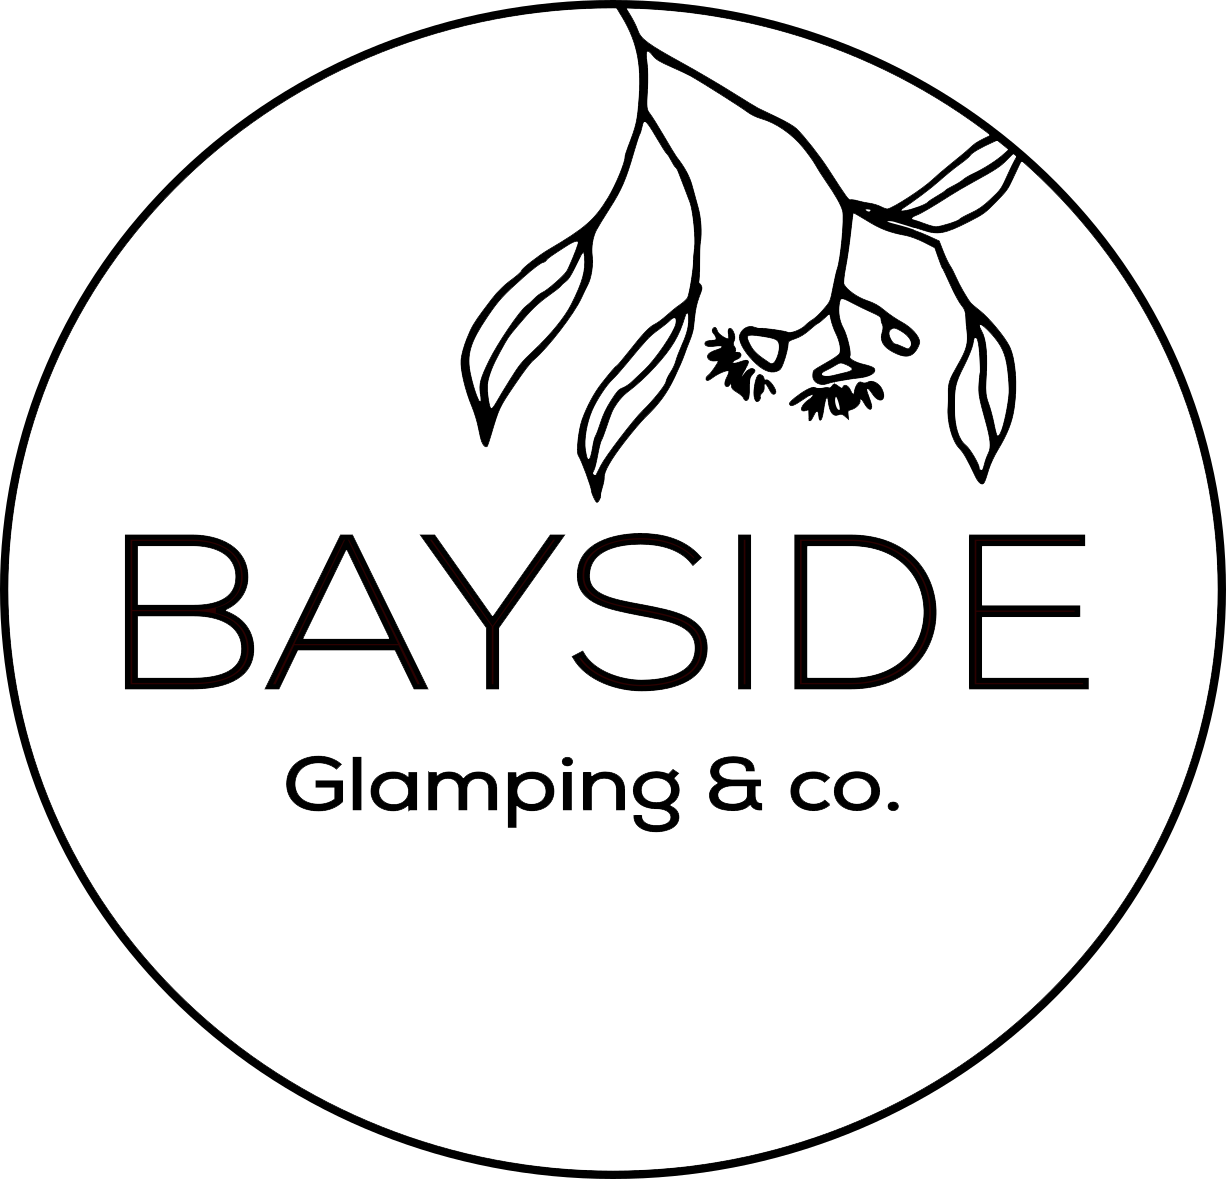 Bayside glamping logo black and white - transparent